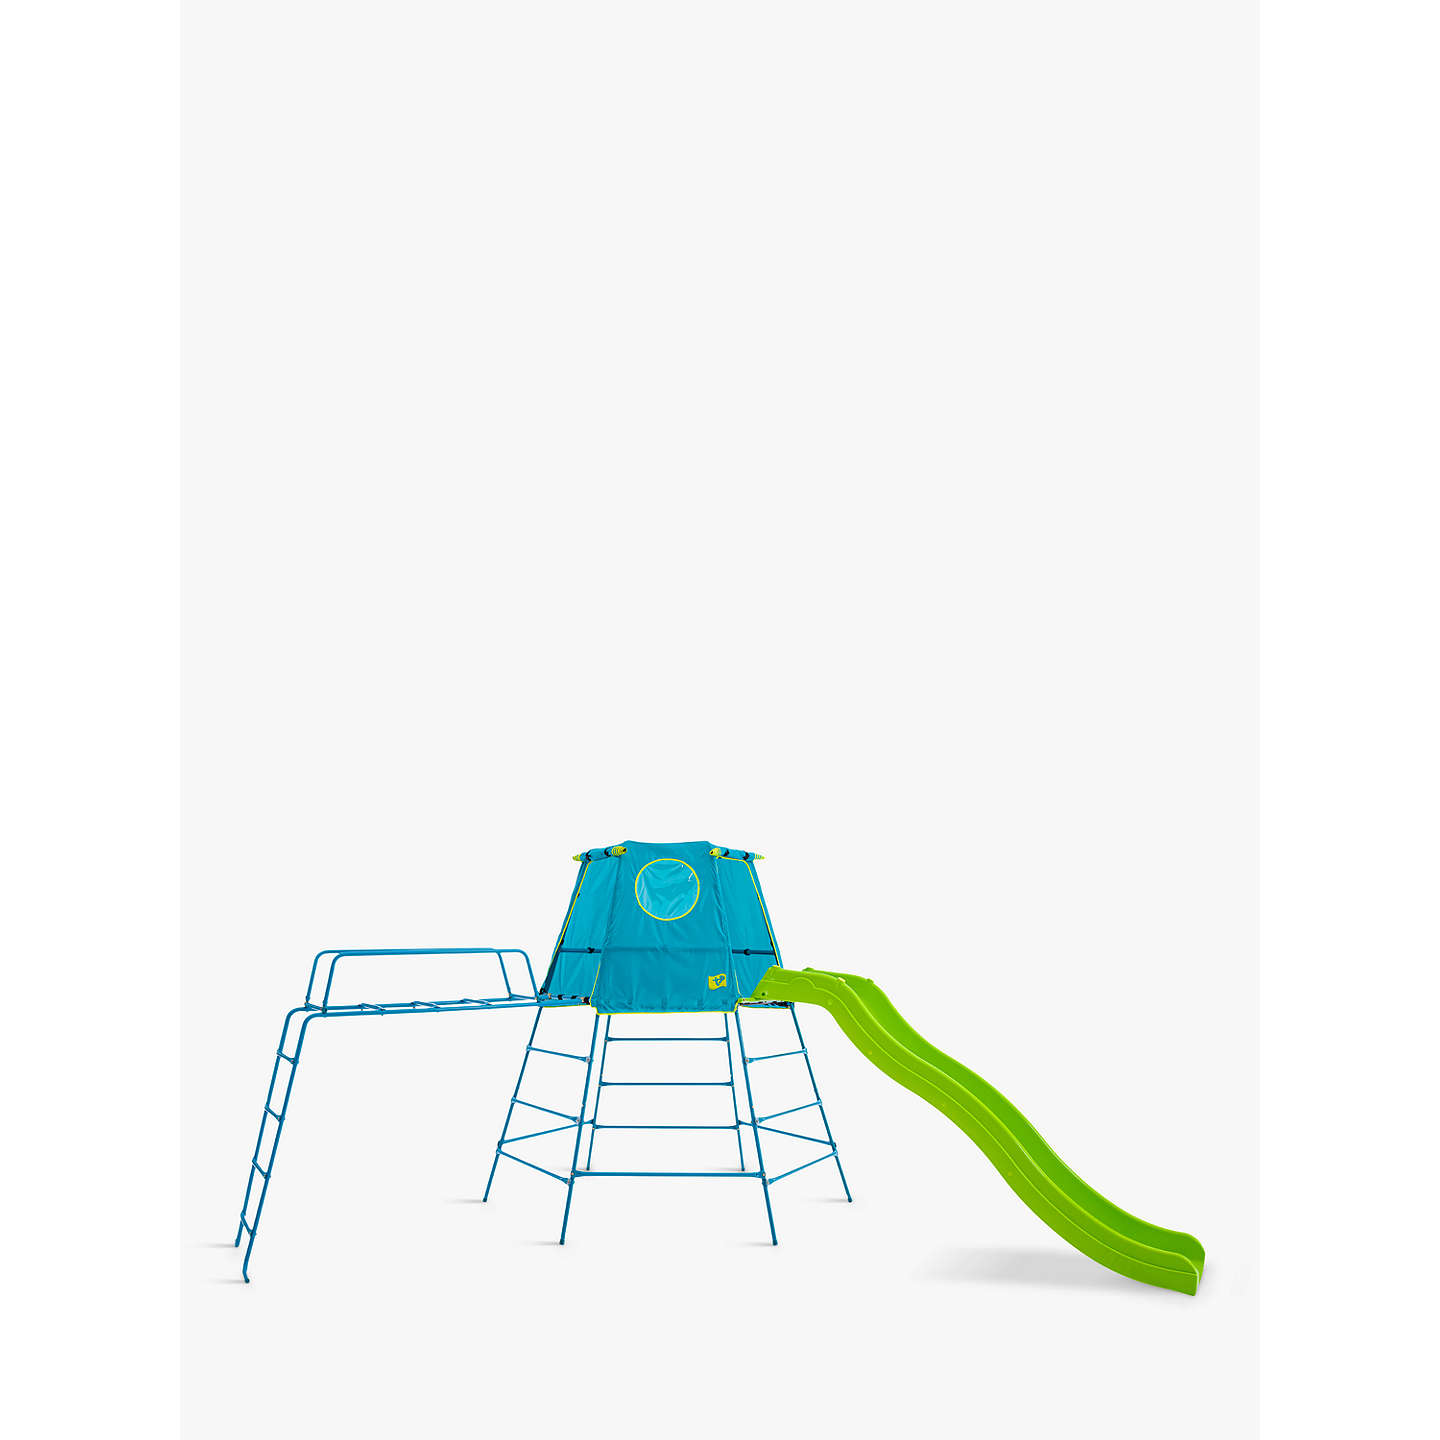 TP Toys 834P1 Explorer Climbing Frame and Slide Set at John Lewis